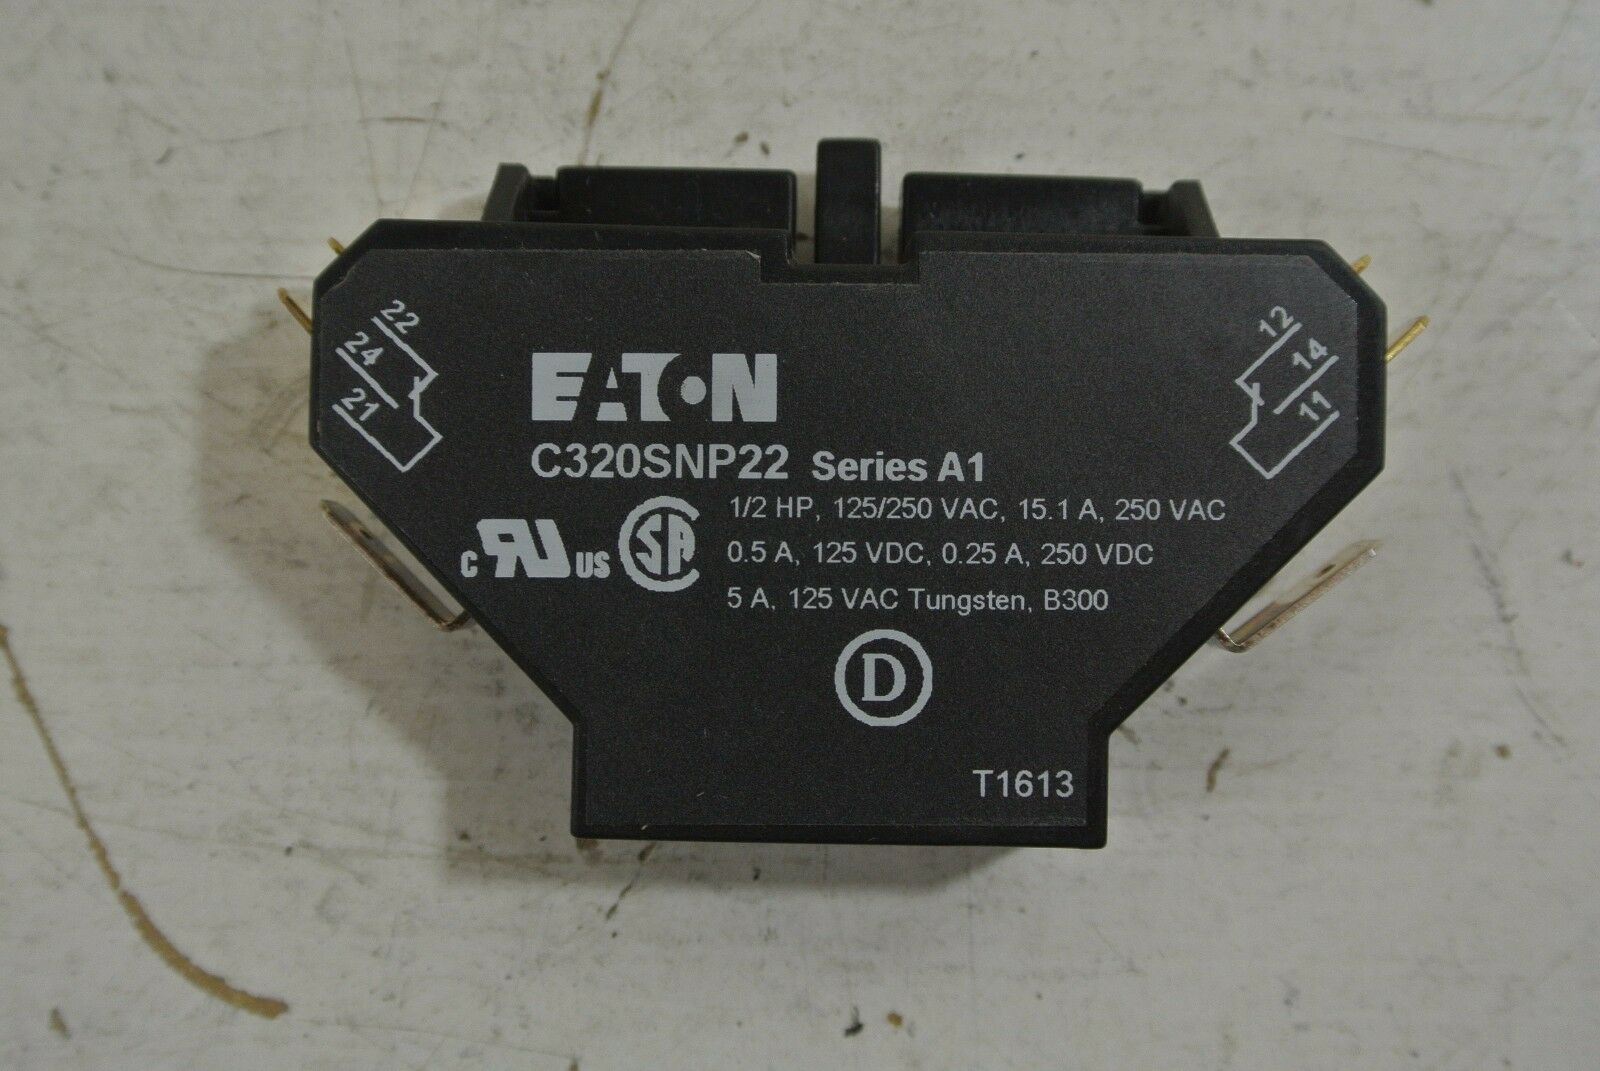 EATON AUXILIARY CONTACTOR snap switch Cat: C320SNP22 - $18.00 | PicClick